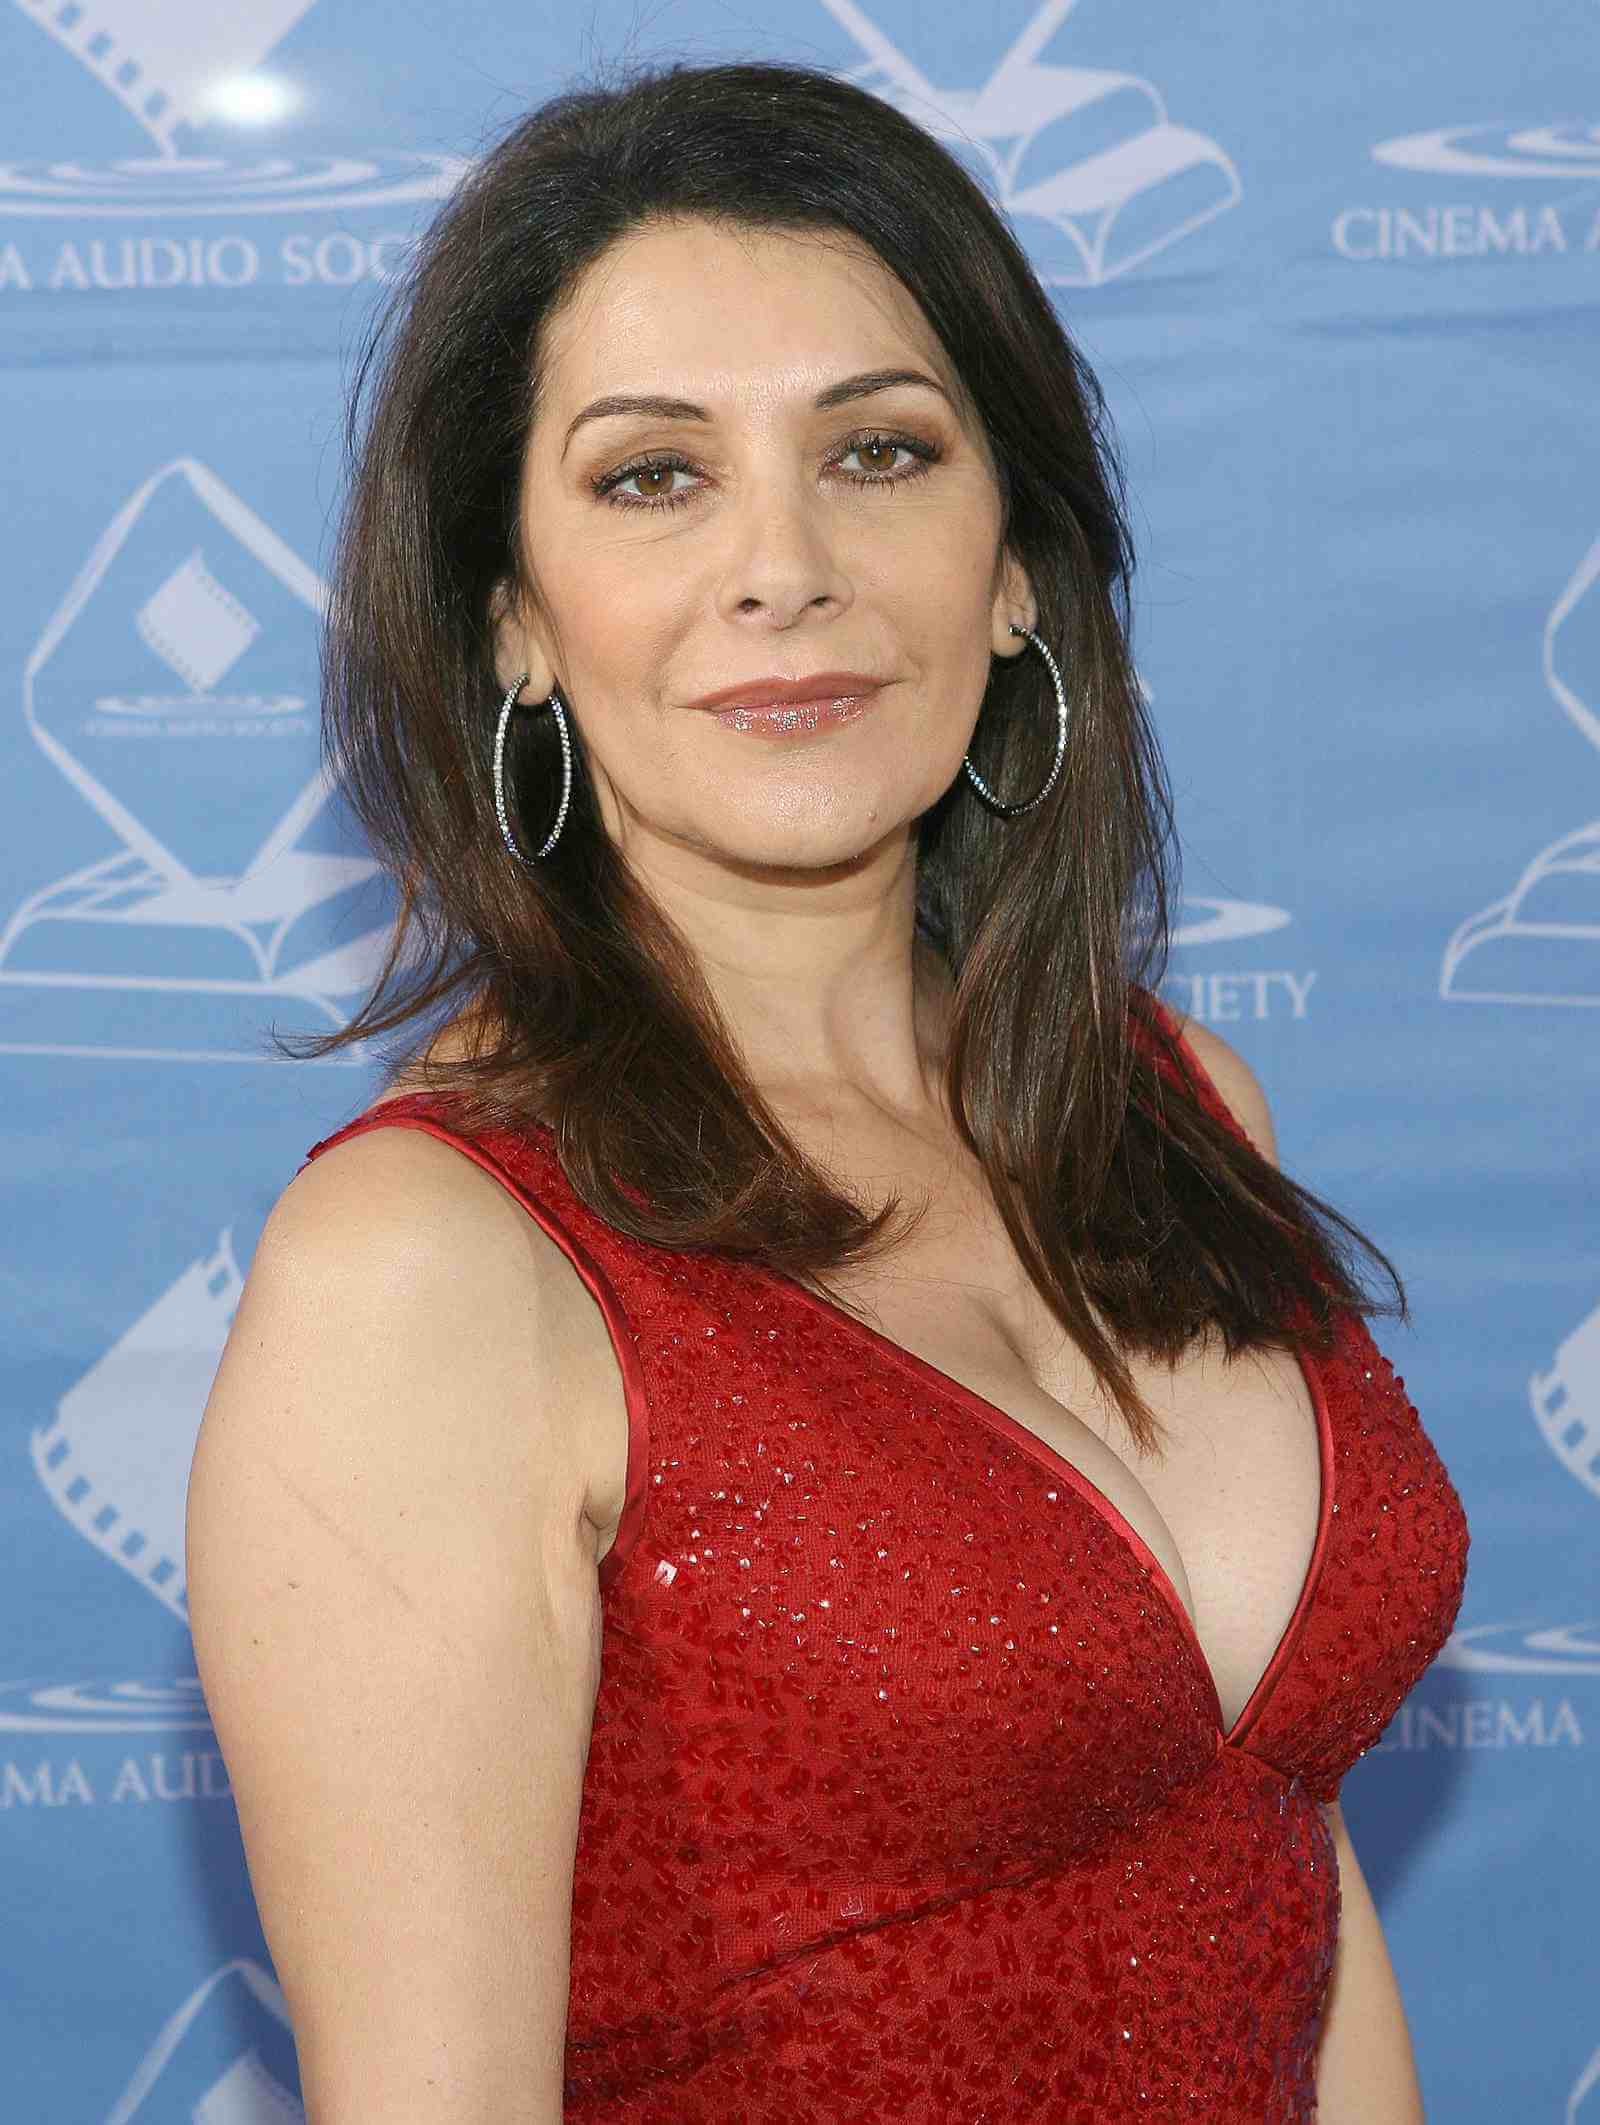 Marina Sirtis sexyt red look